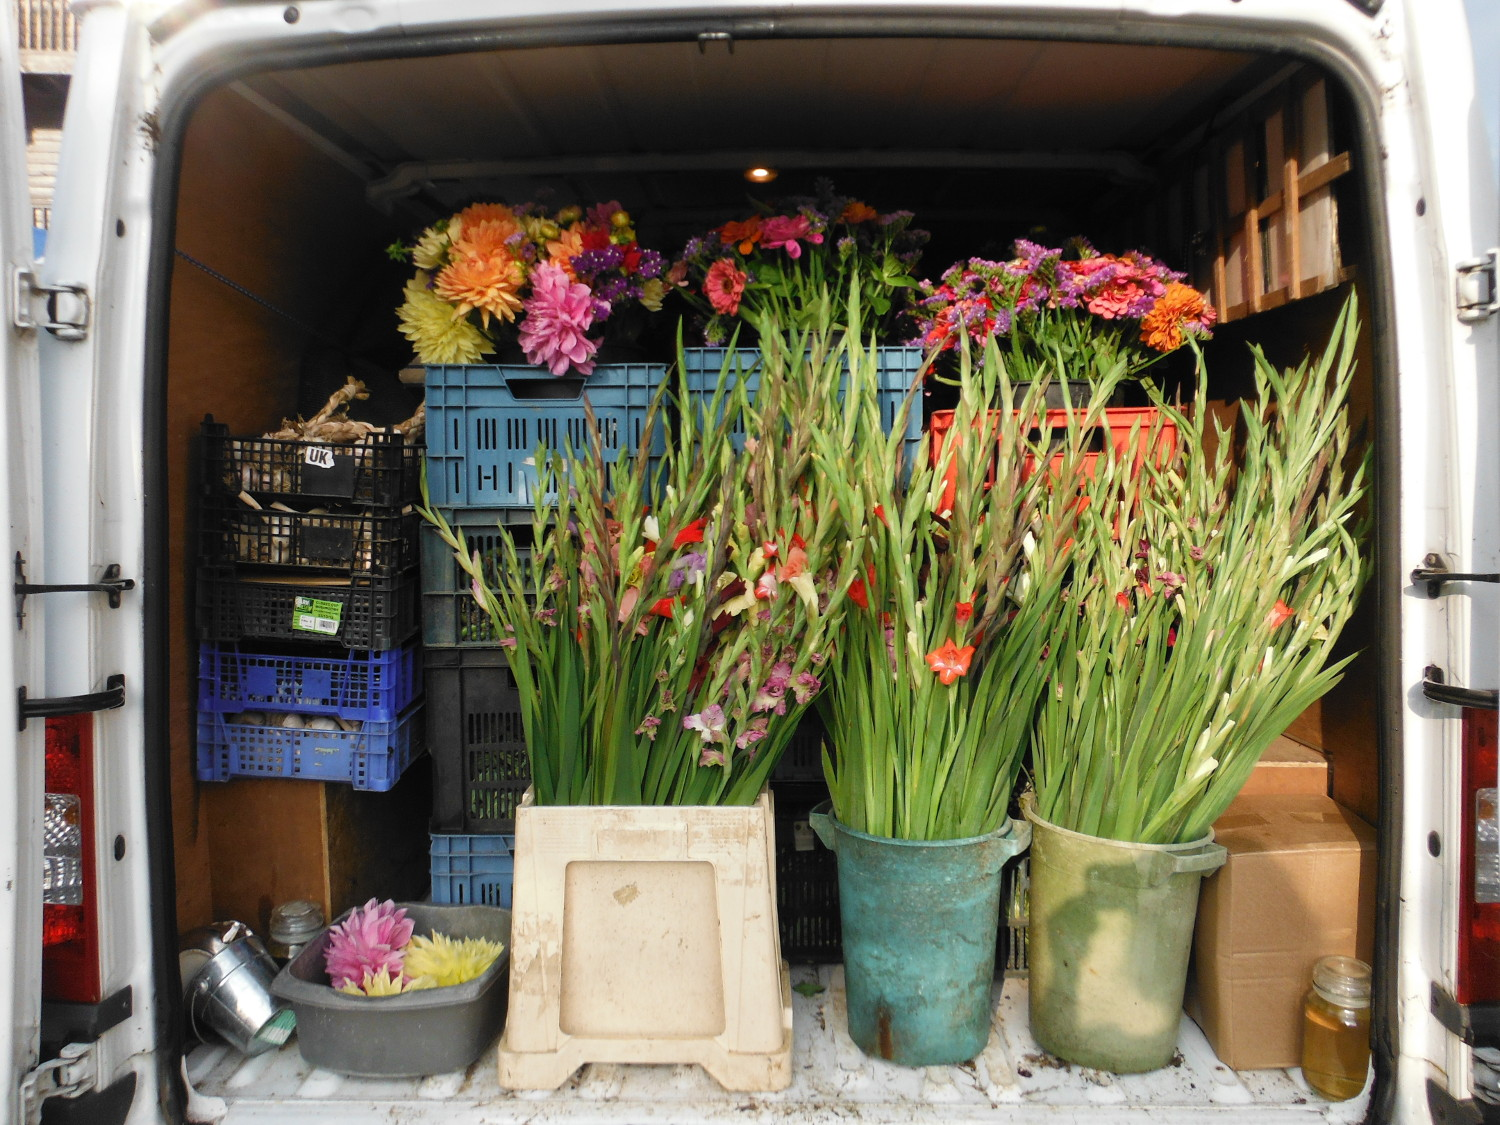 Flowers in the back of the van at farmers market